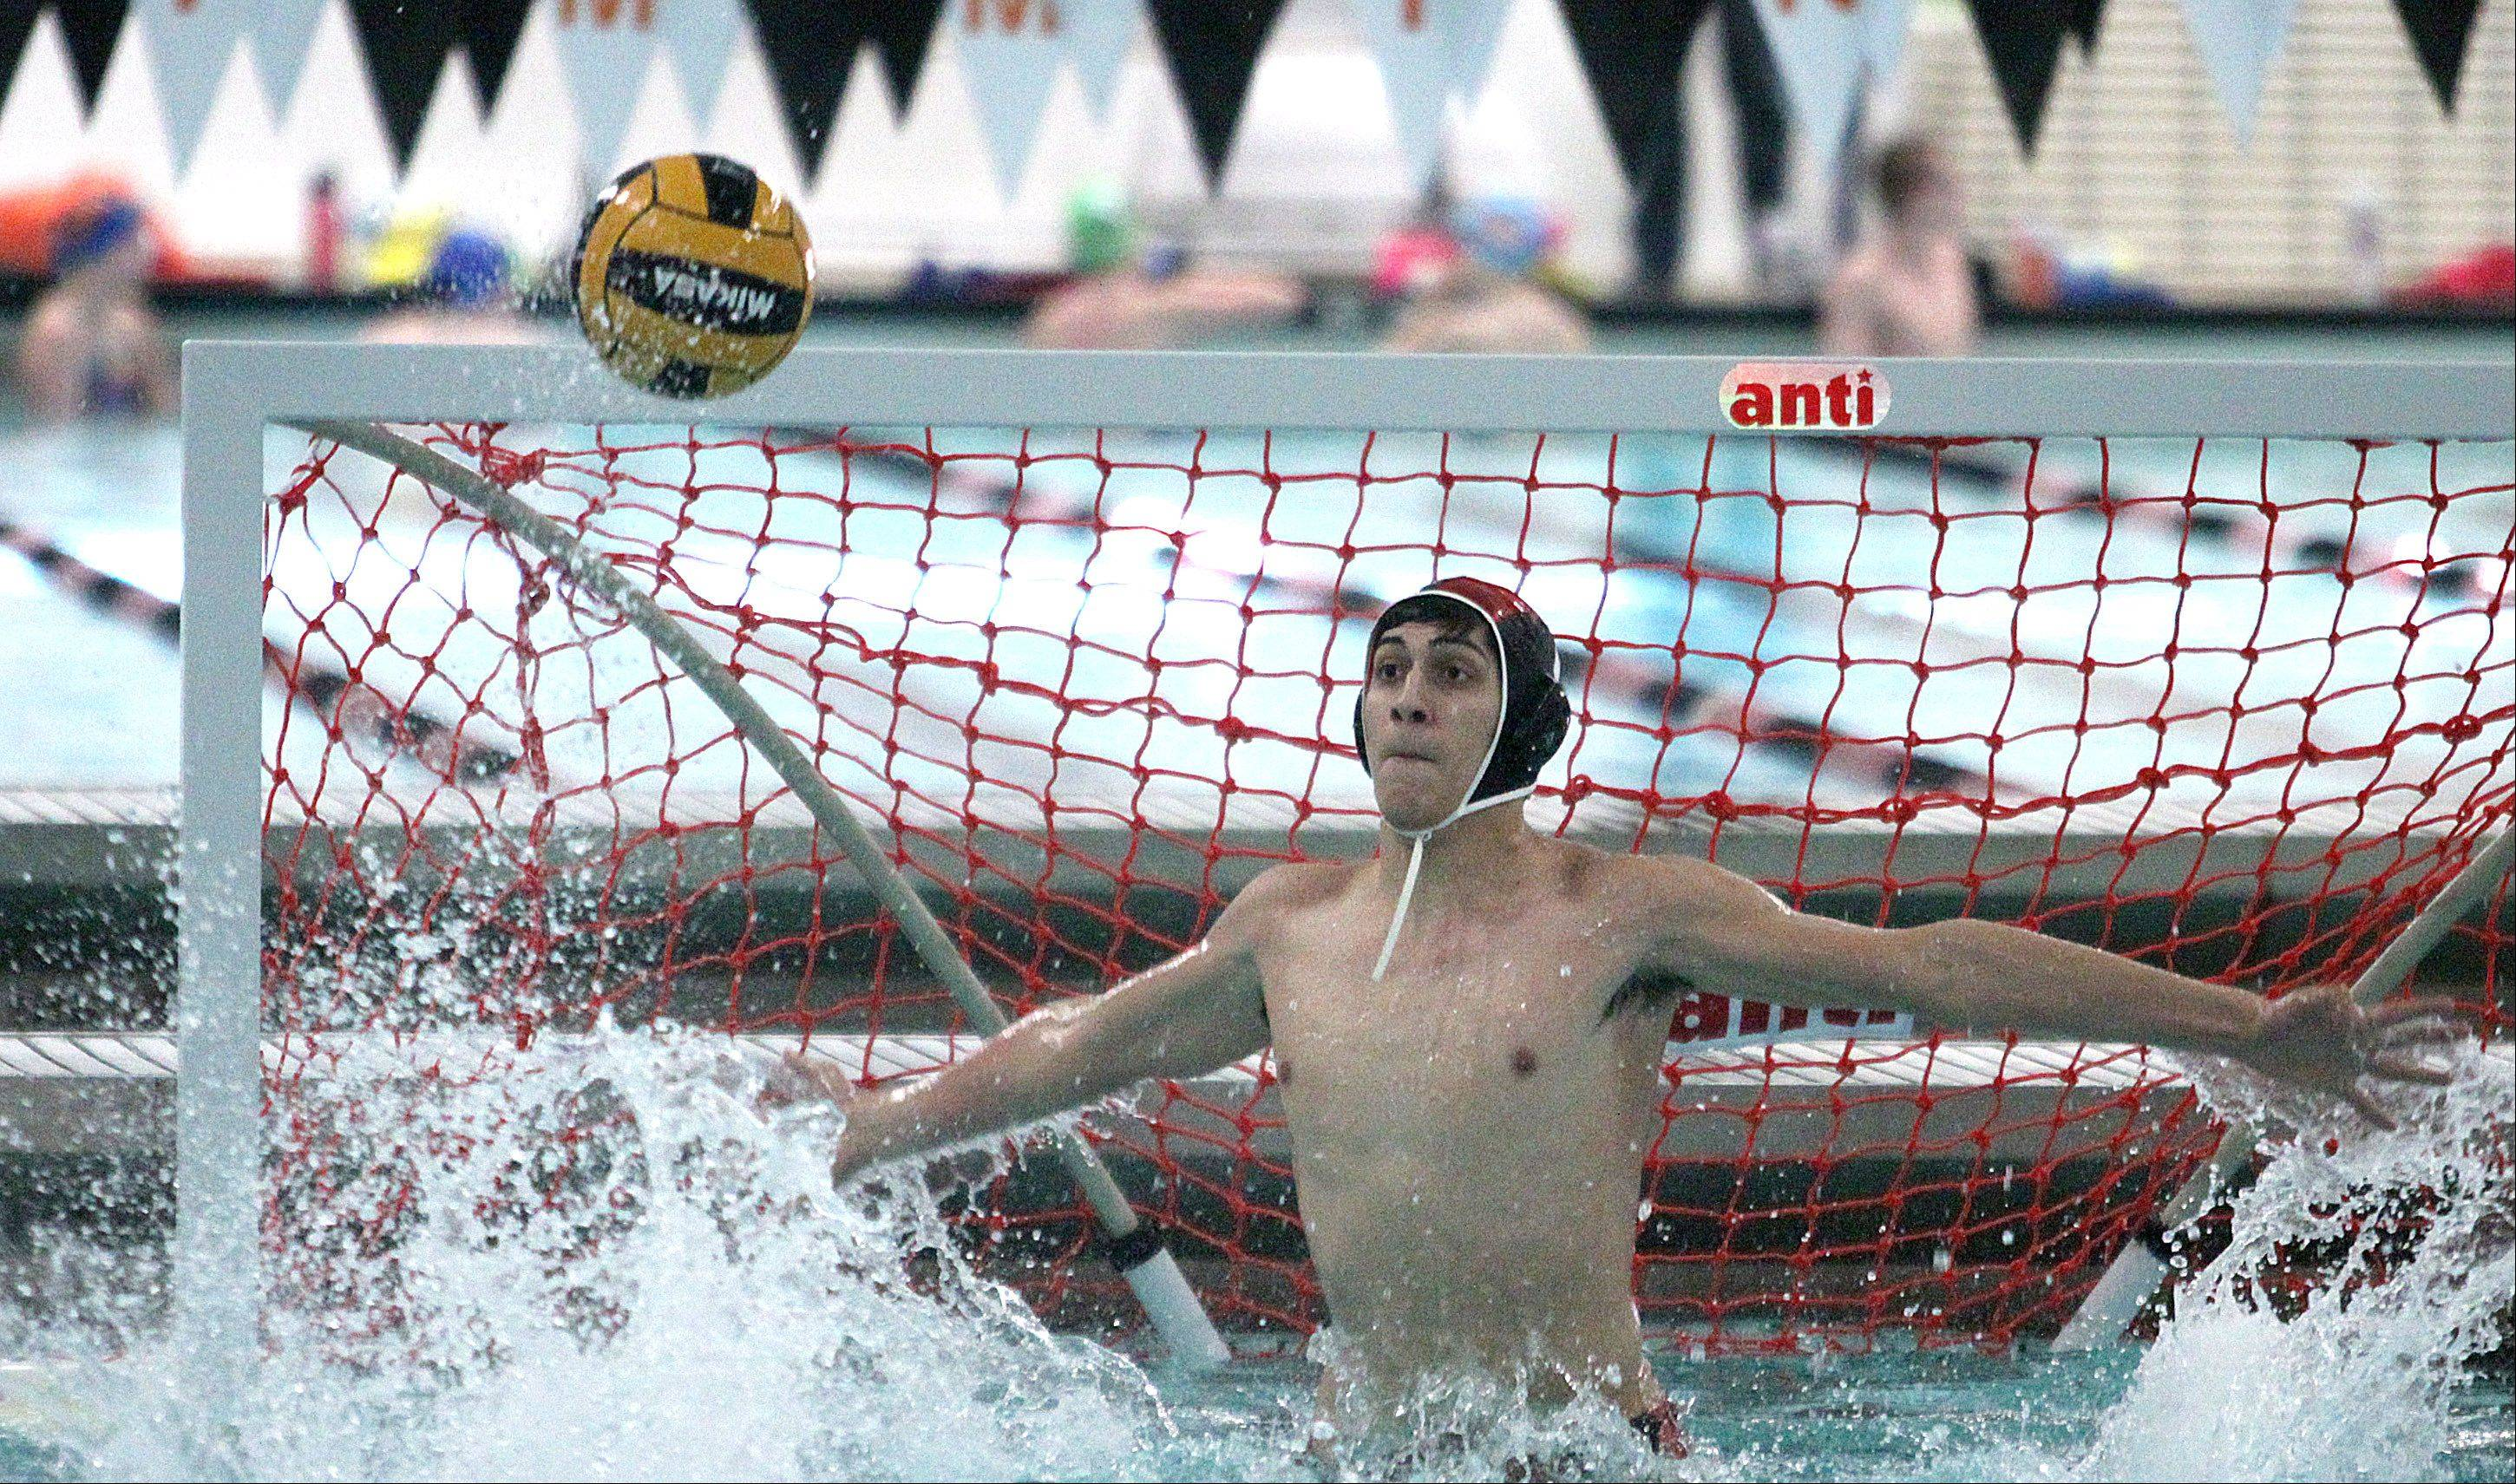 St Charles East's goalie Nick Fagen prepares to make a save during a varsity water polo game against St. Charles North at John Baker Norris Recreation Center on Thursday night.